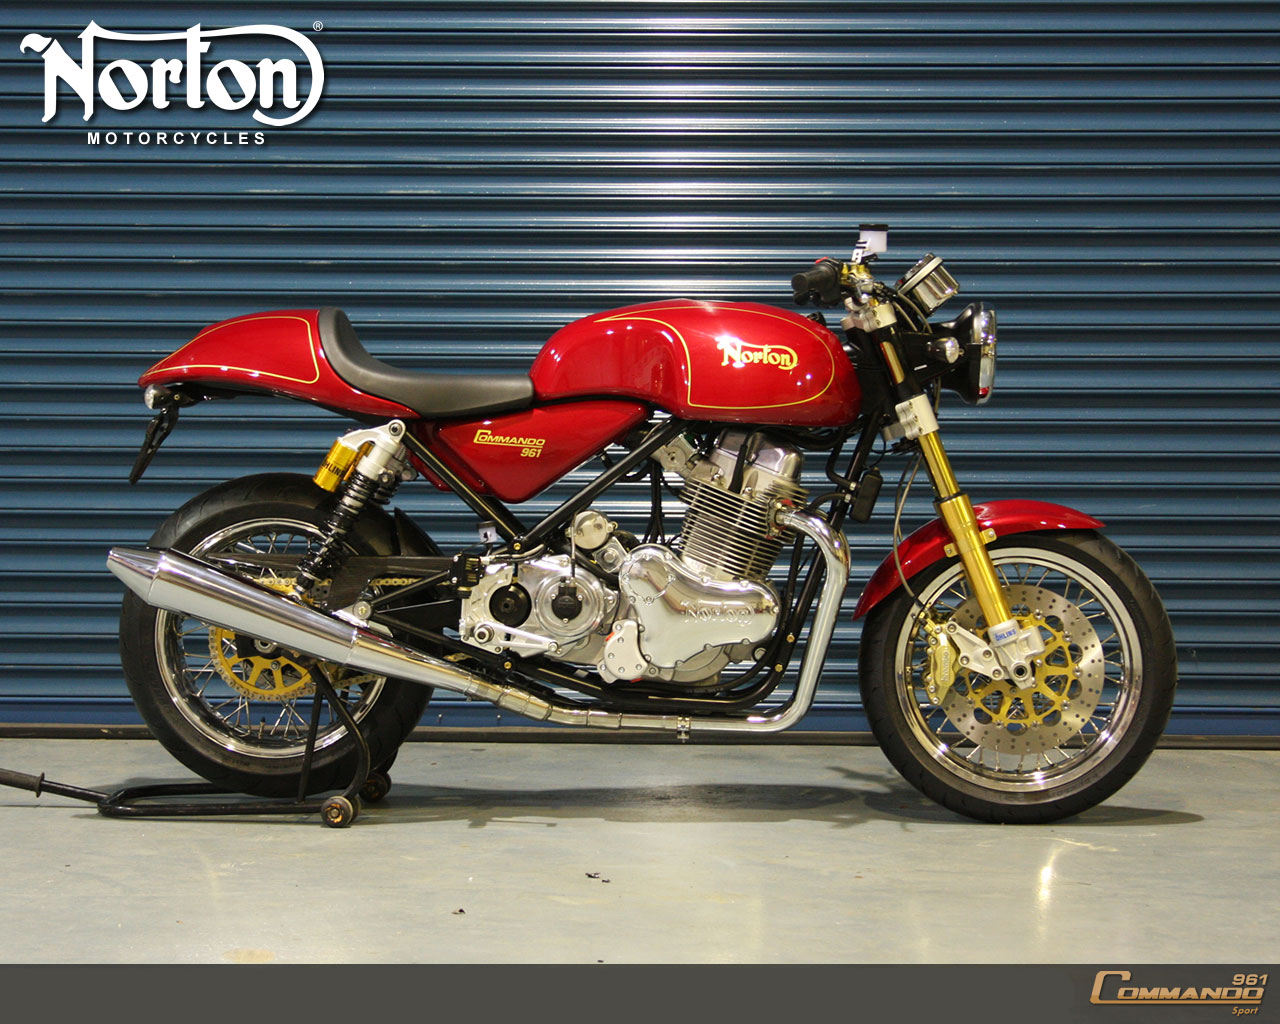 Bellissima norton commando 961 sport for Wallpaper sale uk